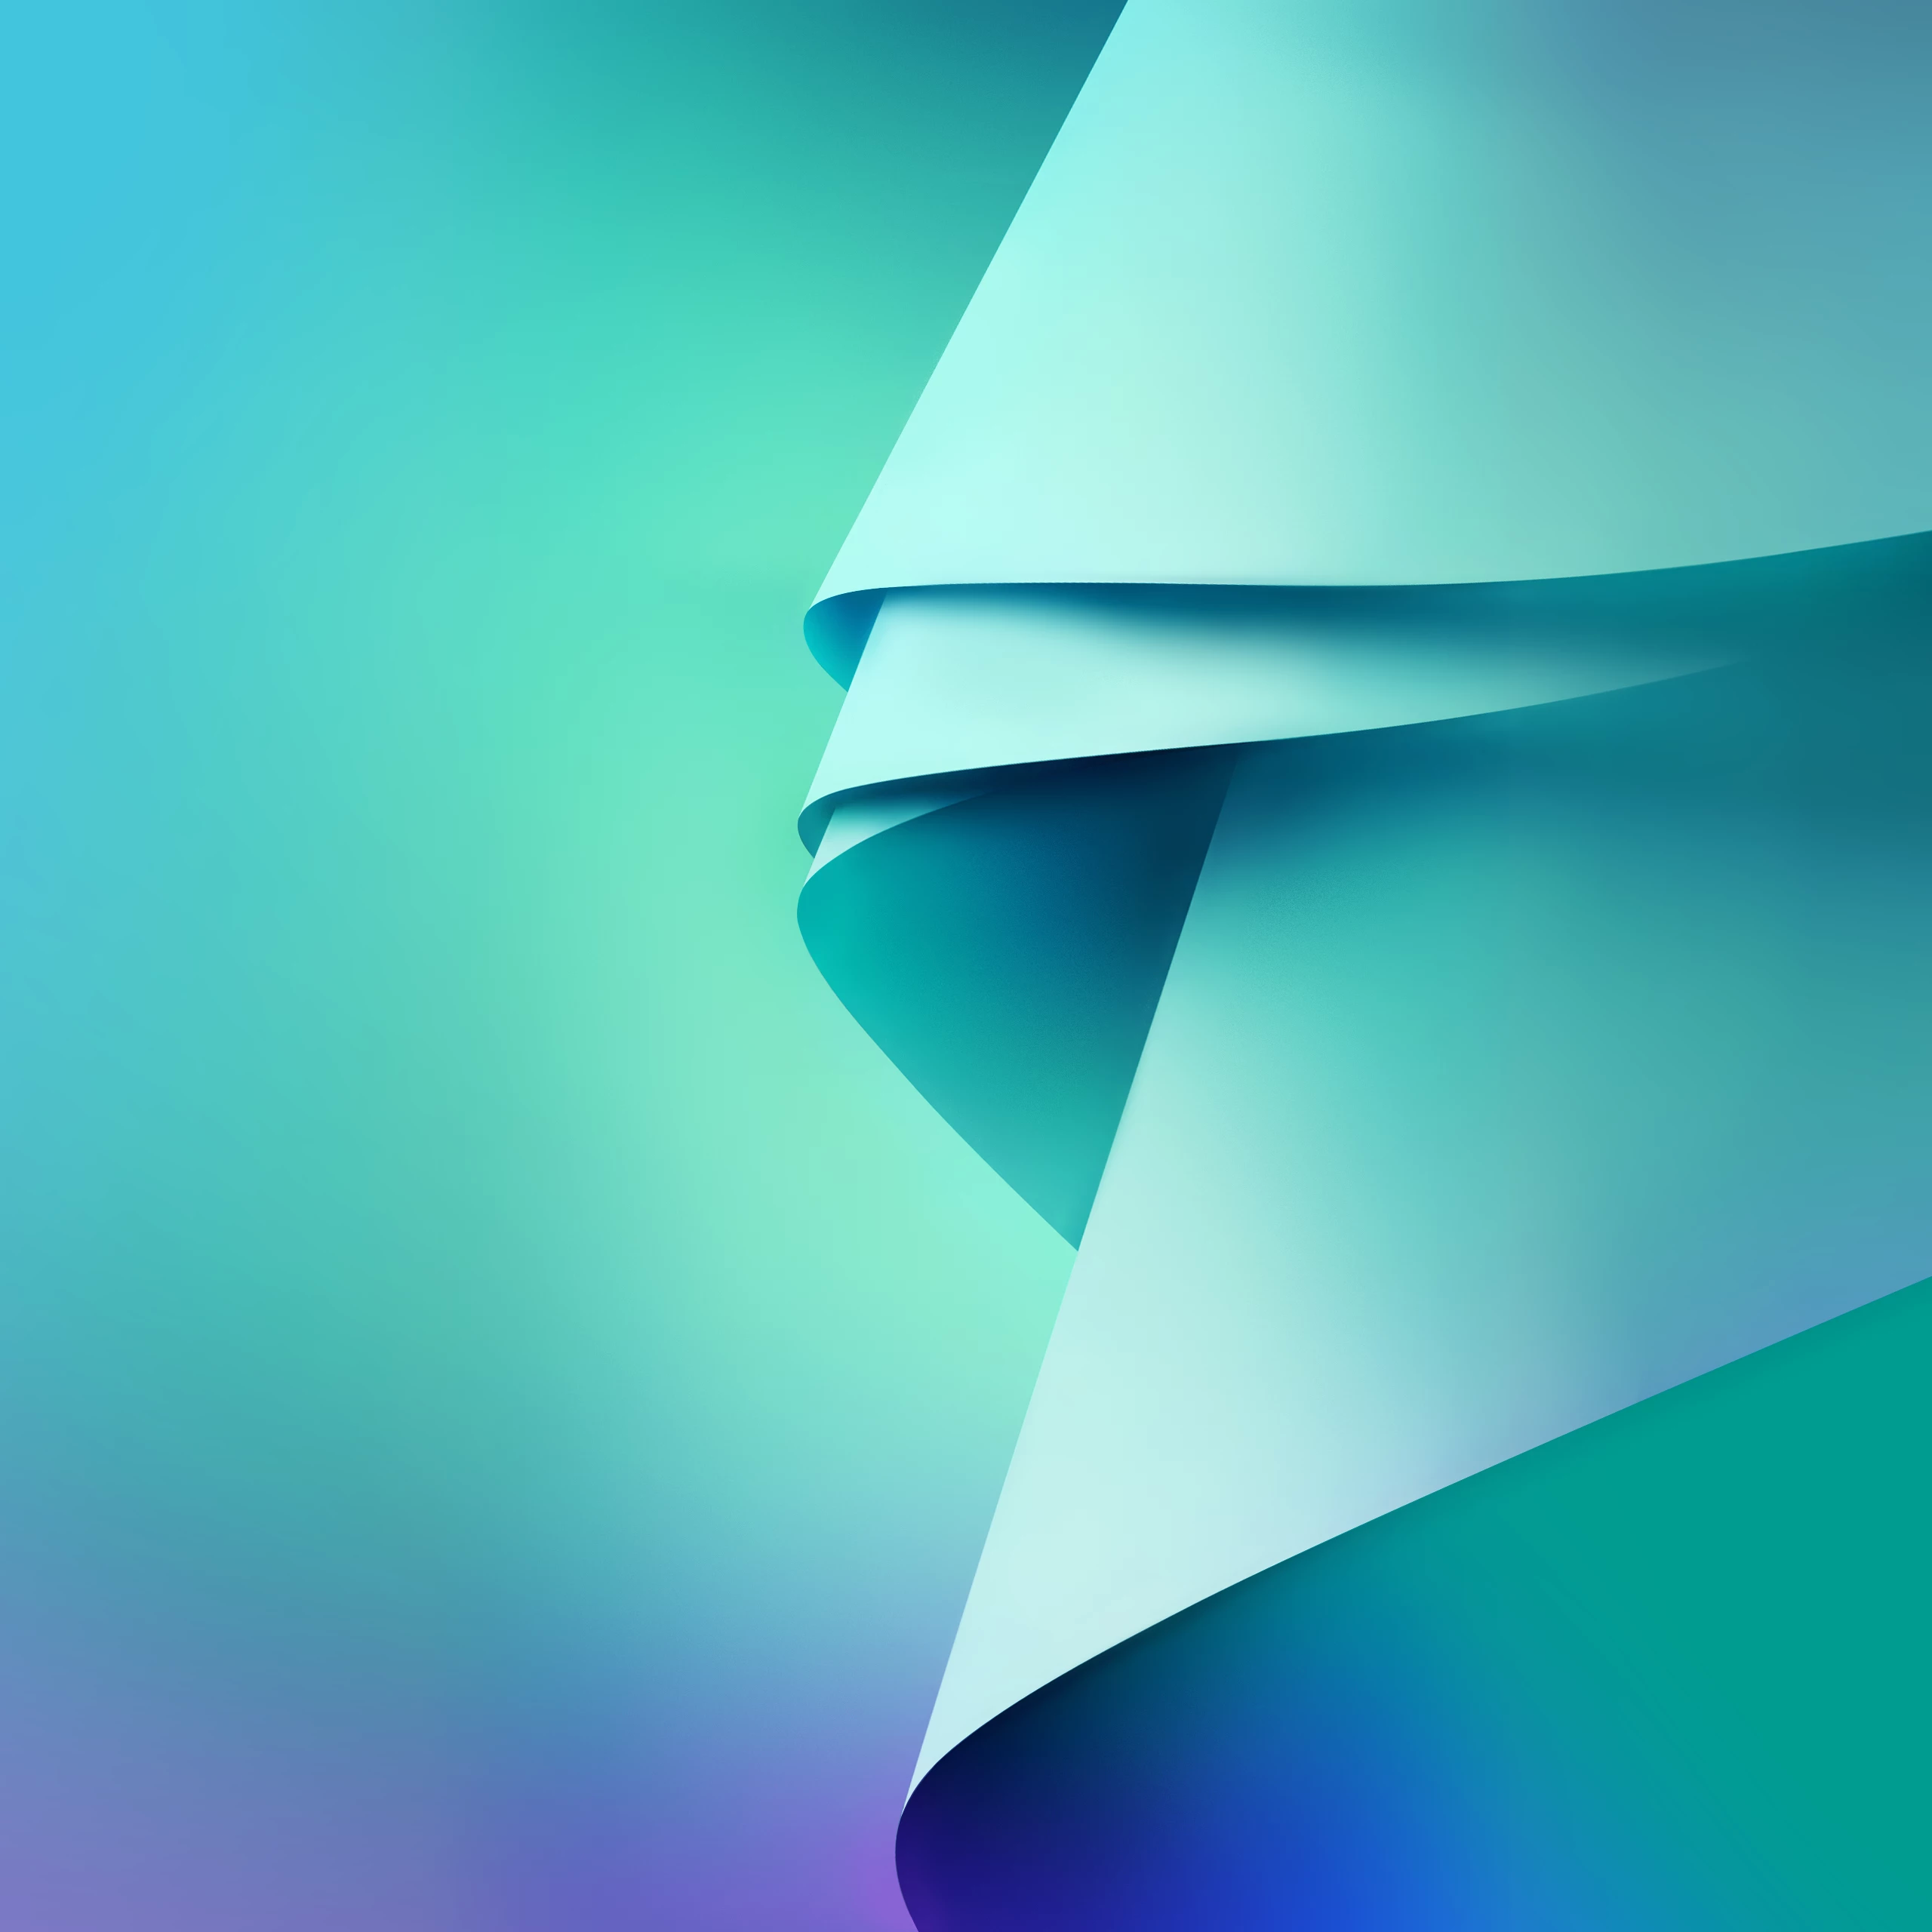 Galaxy-Note-5-Wallpapers-04-1